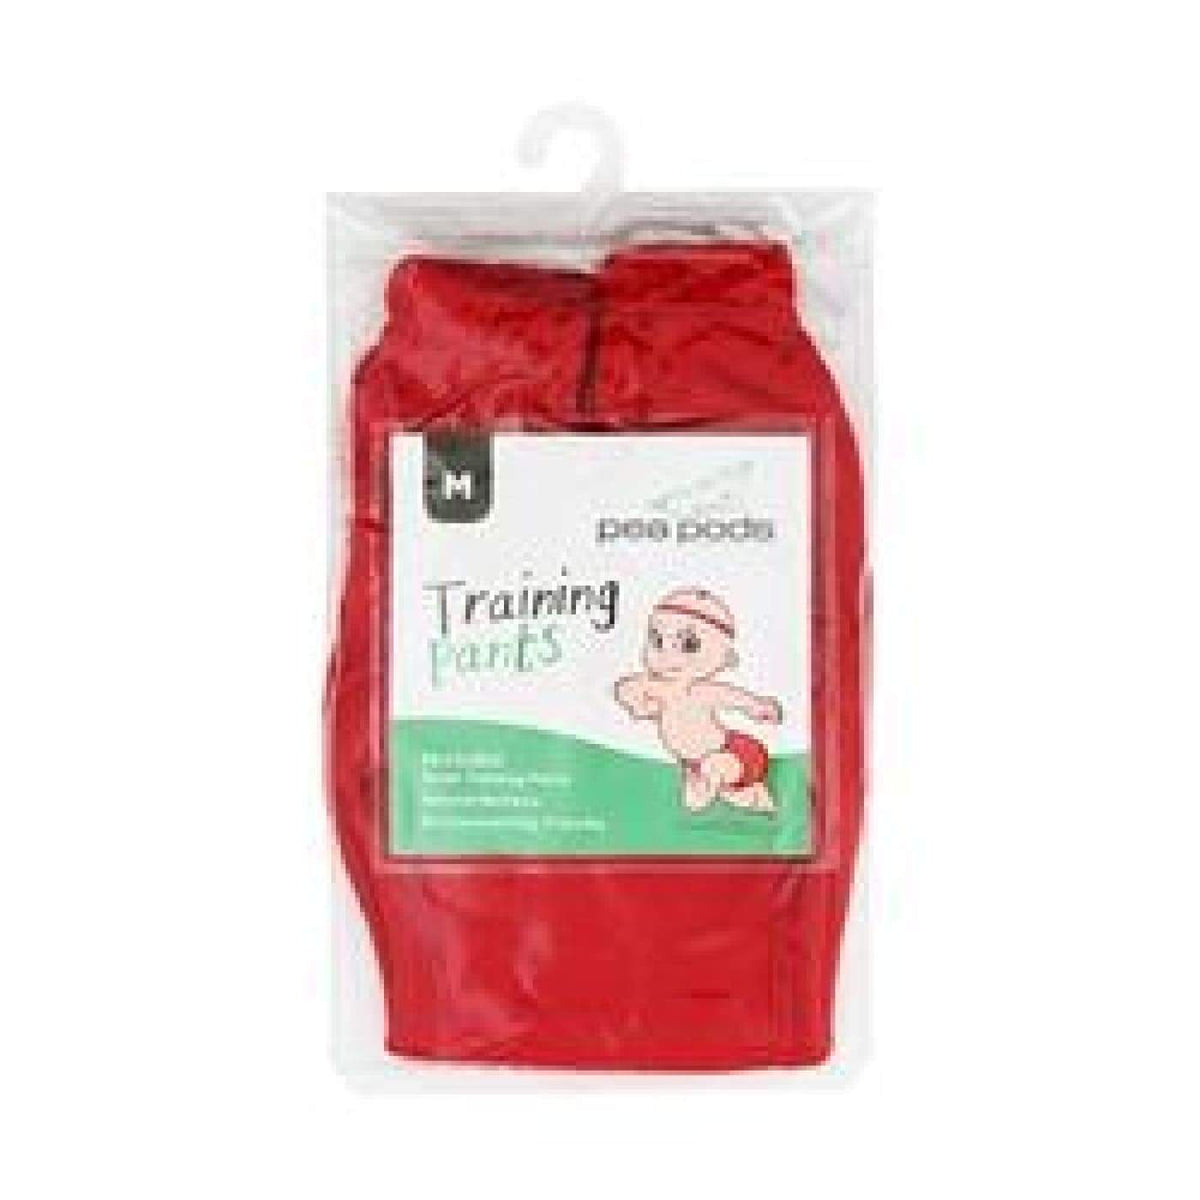 Pea Pods Training Pants Large - Racing Red - BATHTIME & CHANGING - NAPPIES/WIPES/ACC ECO RANGE